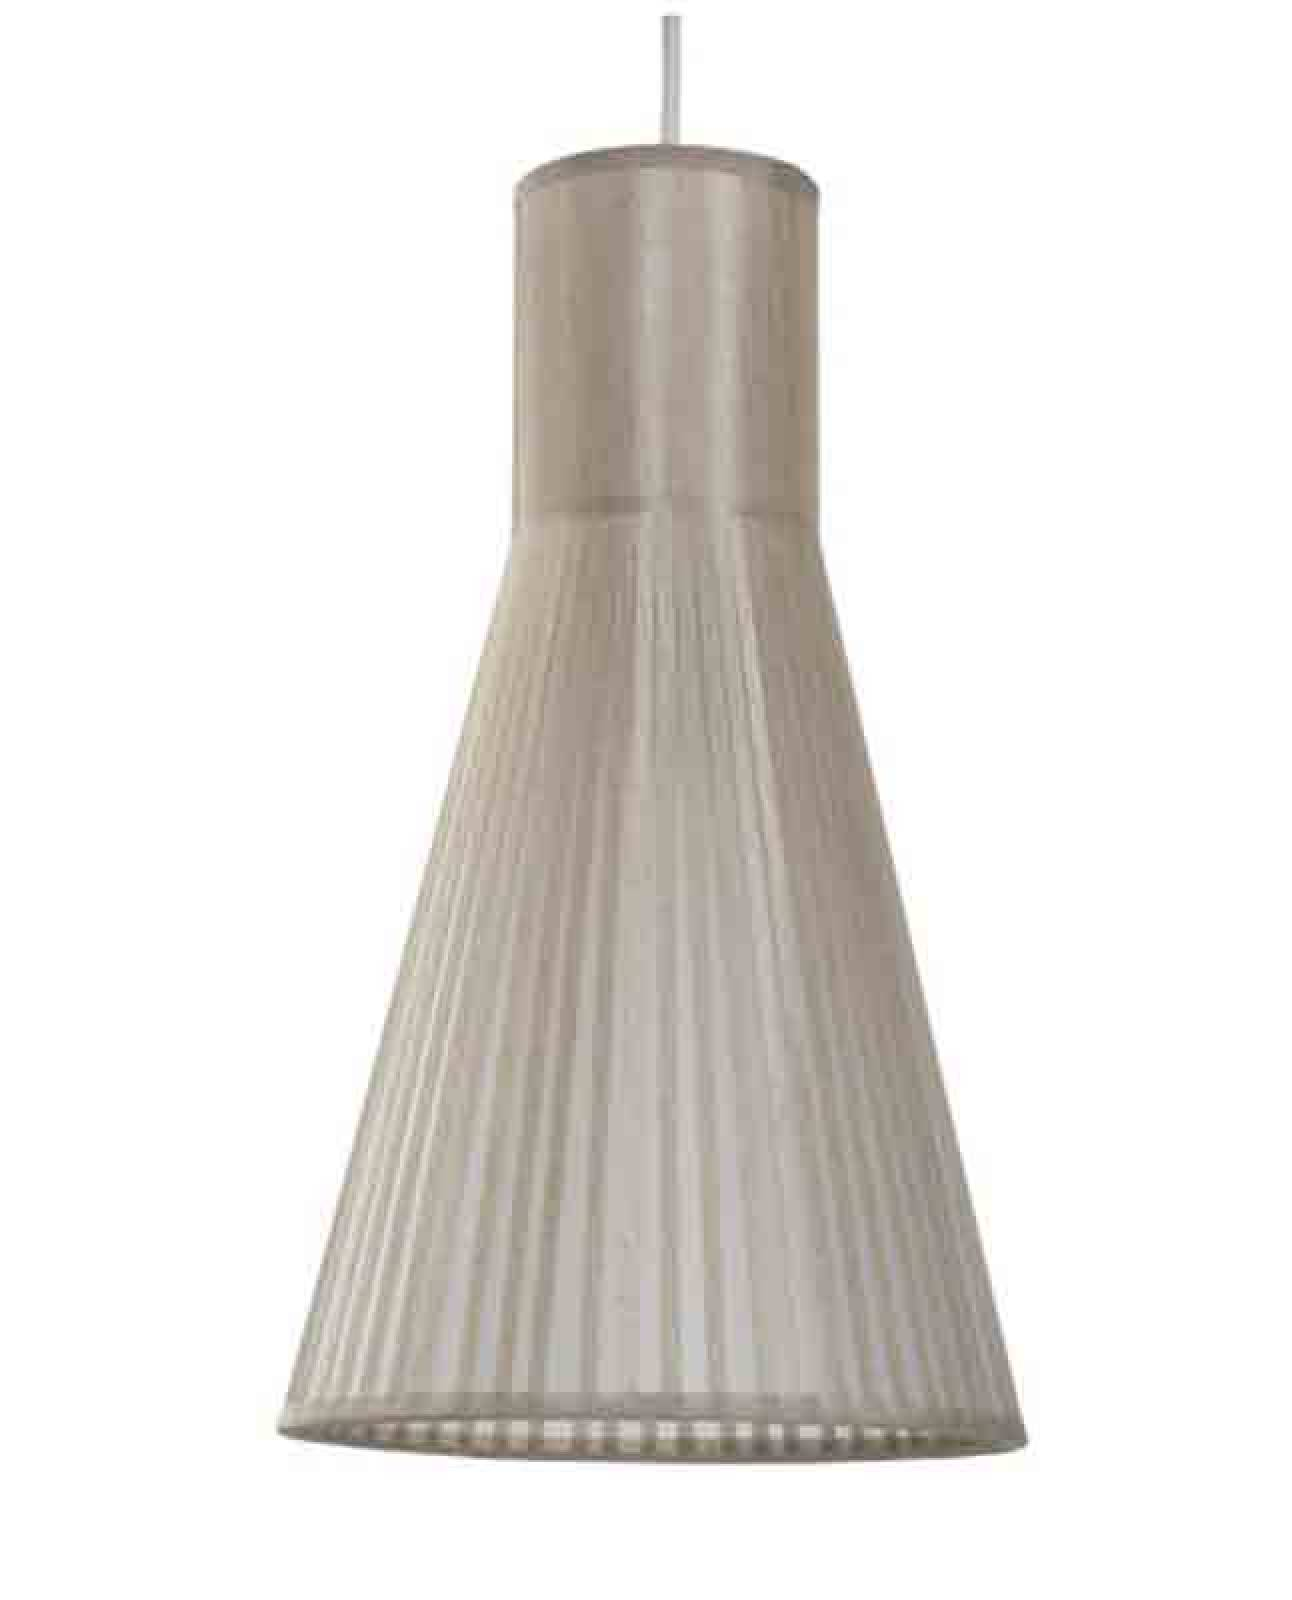 Taupe Funnel Hanging Shade